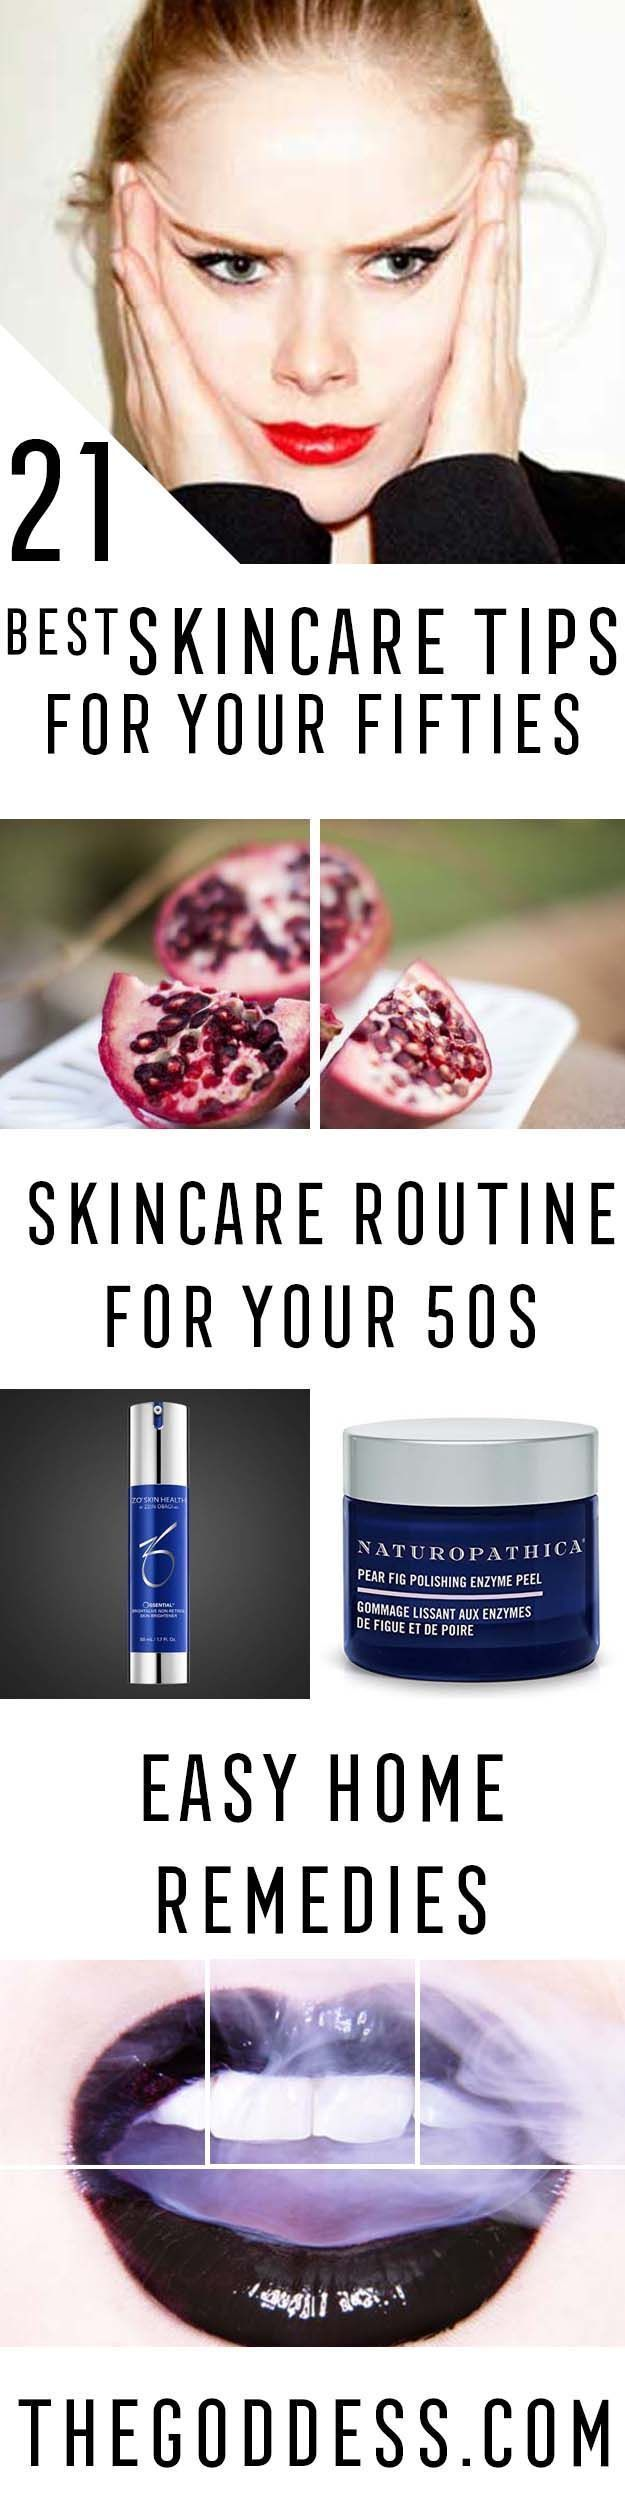 Best Skincare Tips for Your 50s -Check Out These Step By Step, Easy Anti Aging Routines and Skin Care Tips For Women. We Cover Essential Oils, Eye Creams, And Makeup Tips To Help You Stay Looking Younger To Keep That Beautiful Face And Beauty. Anti-Aging Products And Routines That You Can Do At Home To Prevent Wrinkles, Hide Puffy Eyes And Dark Circles, And Cover Acne Scars. Also Included Are Skin Masks, Vitamins, And Skincare Products To Restore Your Natural Beauty And Skin. Look Younger As…